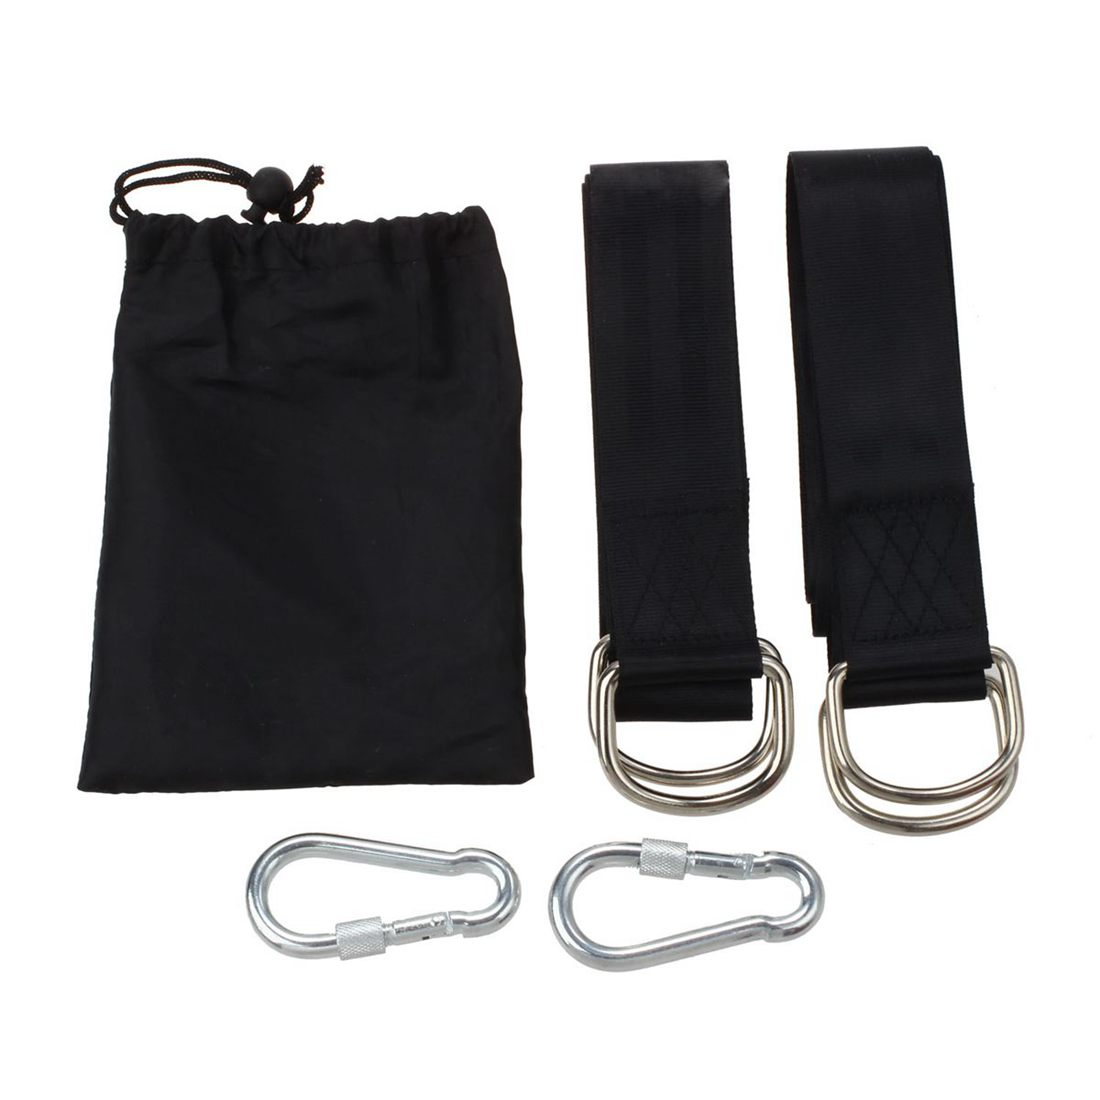 Promotion! Black Tree Swing Hanging Kit, Two 59 Inch Tree Straps With Safer Lock Snap Carabiner Hooks, Perfect For Tree Swing